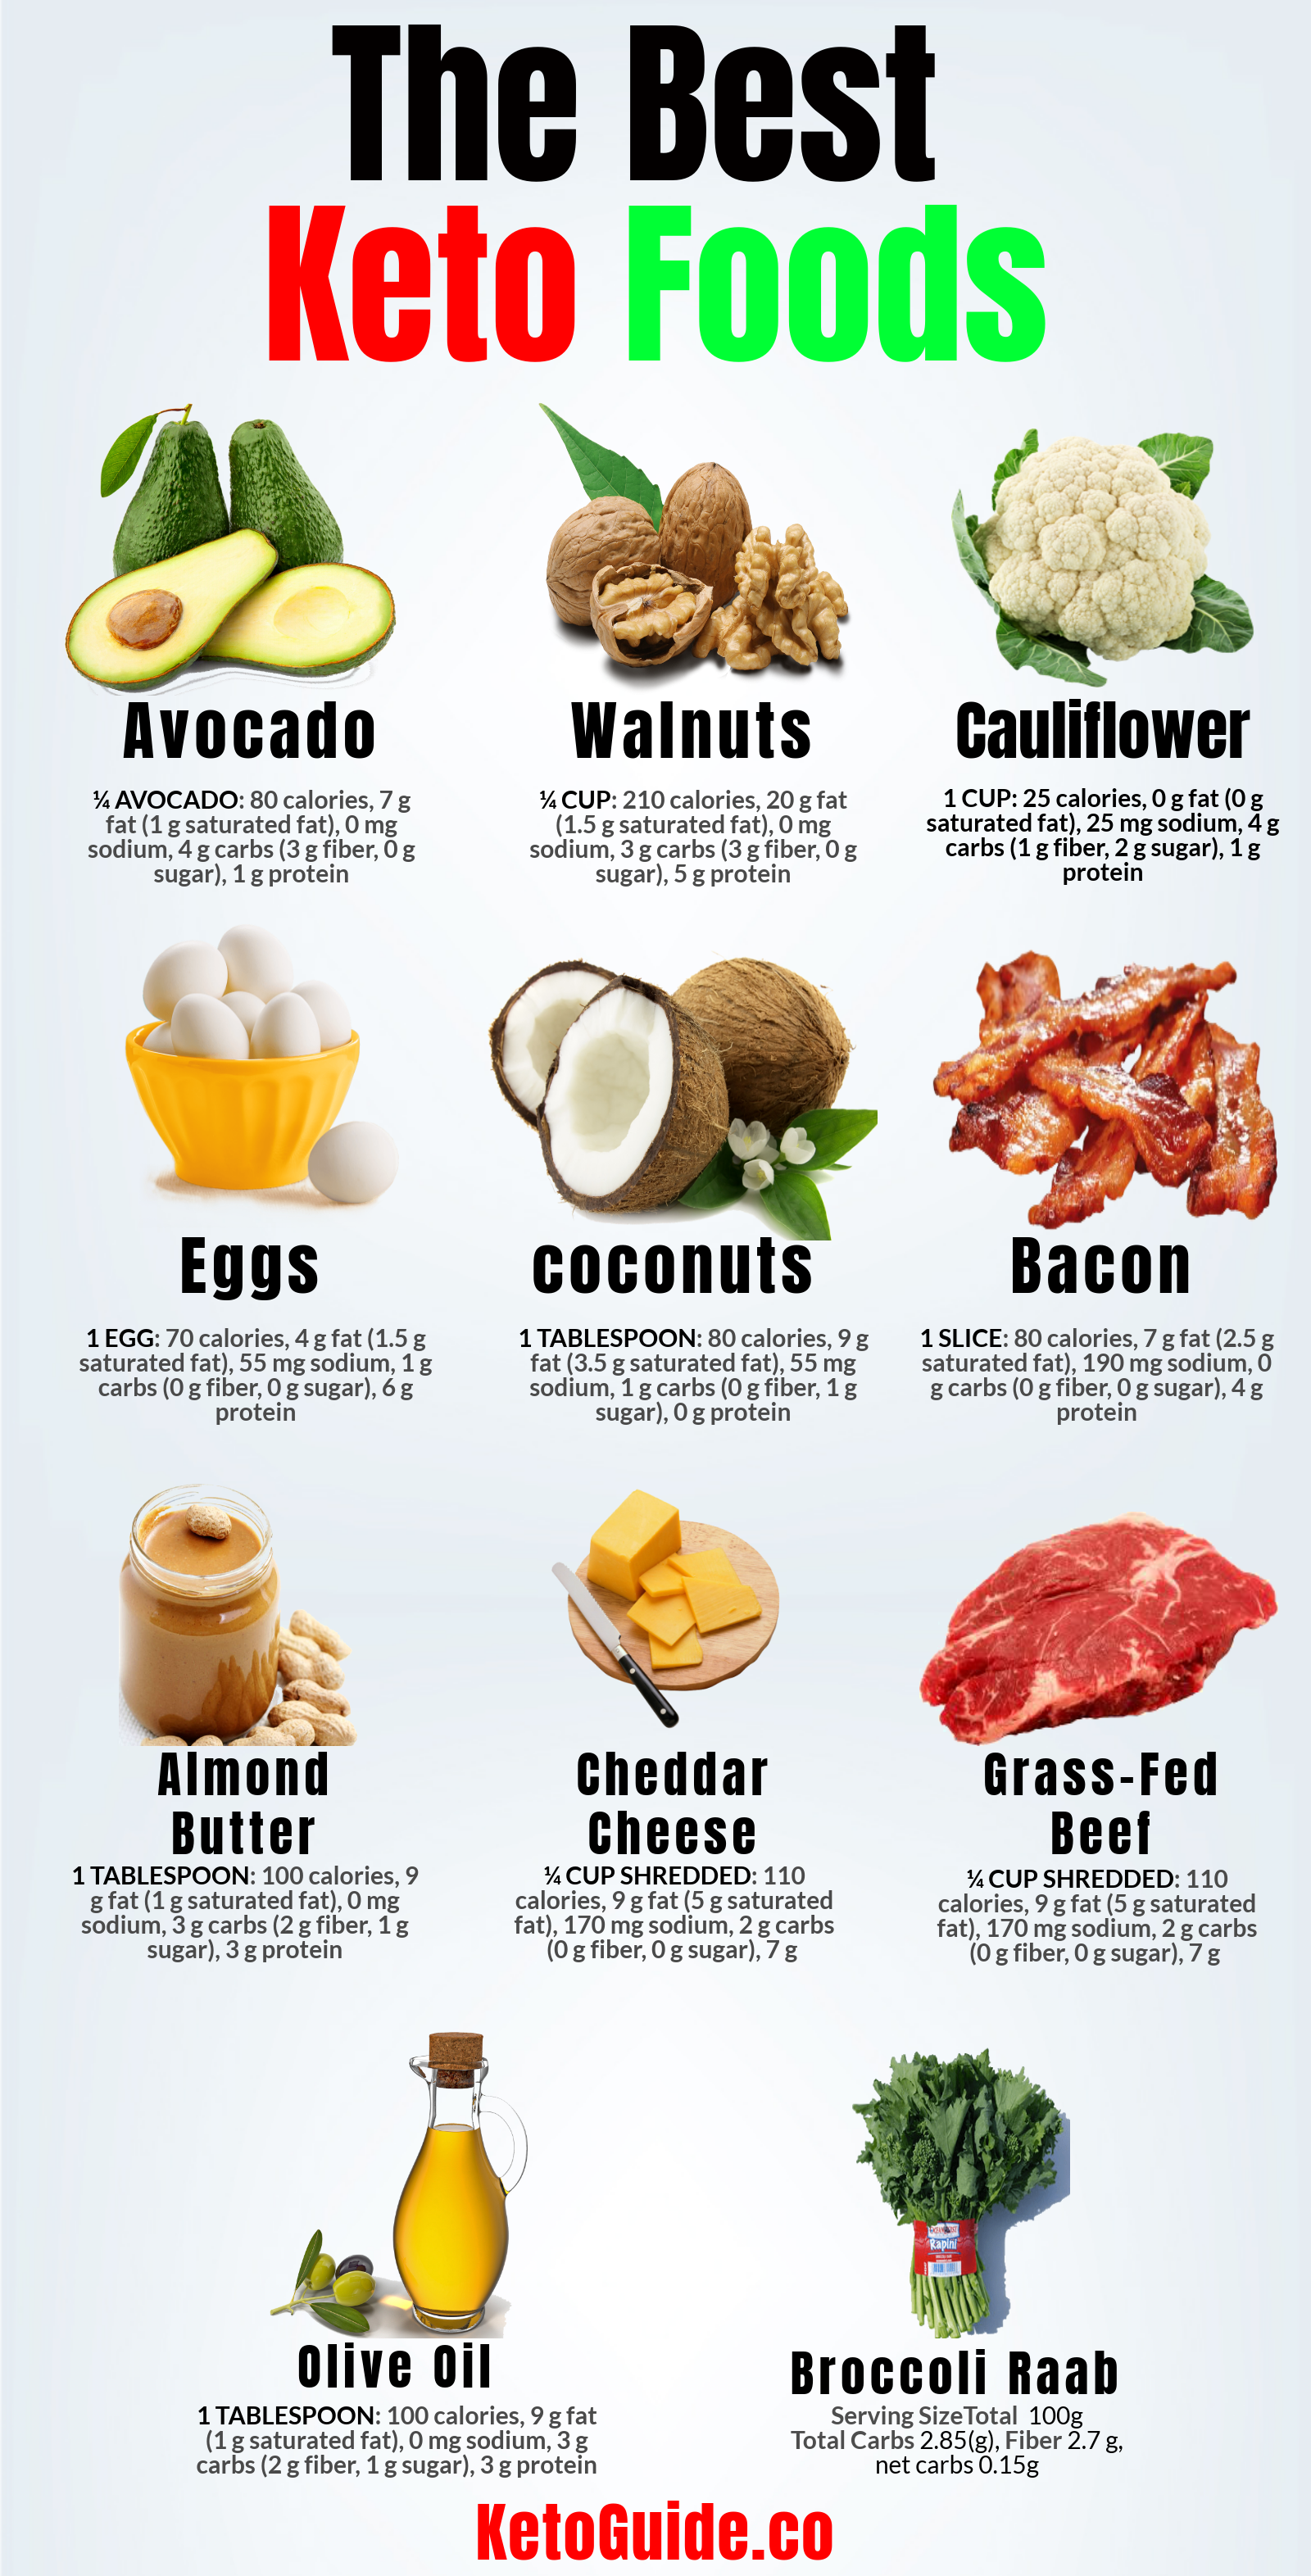 Looking for some more info on Keto? Just Follow Us and Get The ultimate keto diet guide for beginners and a 12 weak keto diet meal plan with over 370 easy-to-prepare keto recipes for beginners and everything you need to know about keto diet. #keto #ketorecipes #ketodiet #ketogenic #ketogenicdiet #weightlossrecipes #lowcarb #lowcarbdiet #dietplan #weightloss #ketodiet #loseweight #ketorecipes #diet #weightlosstransformation #ketodietforbeginners